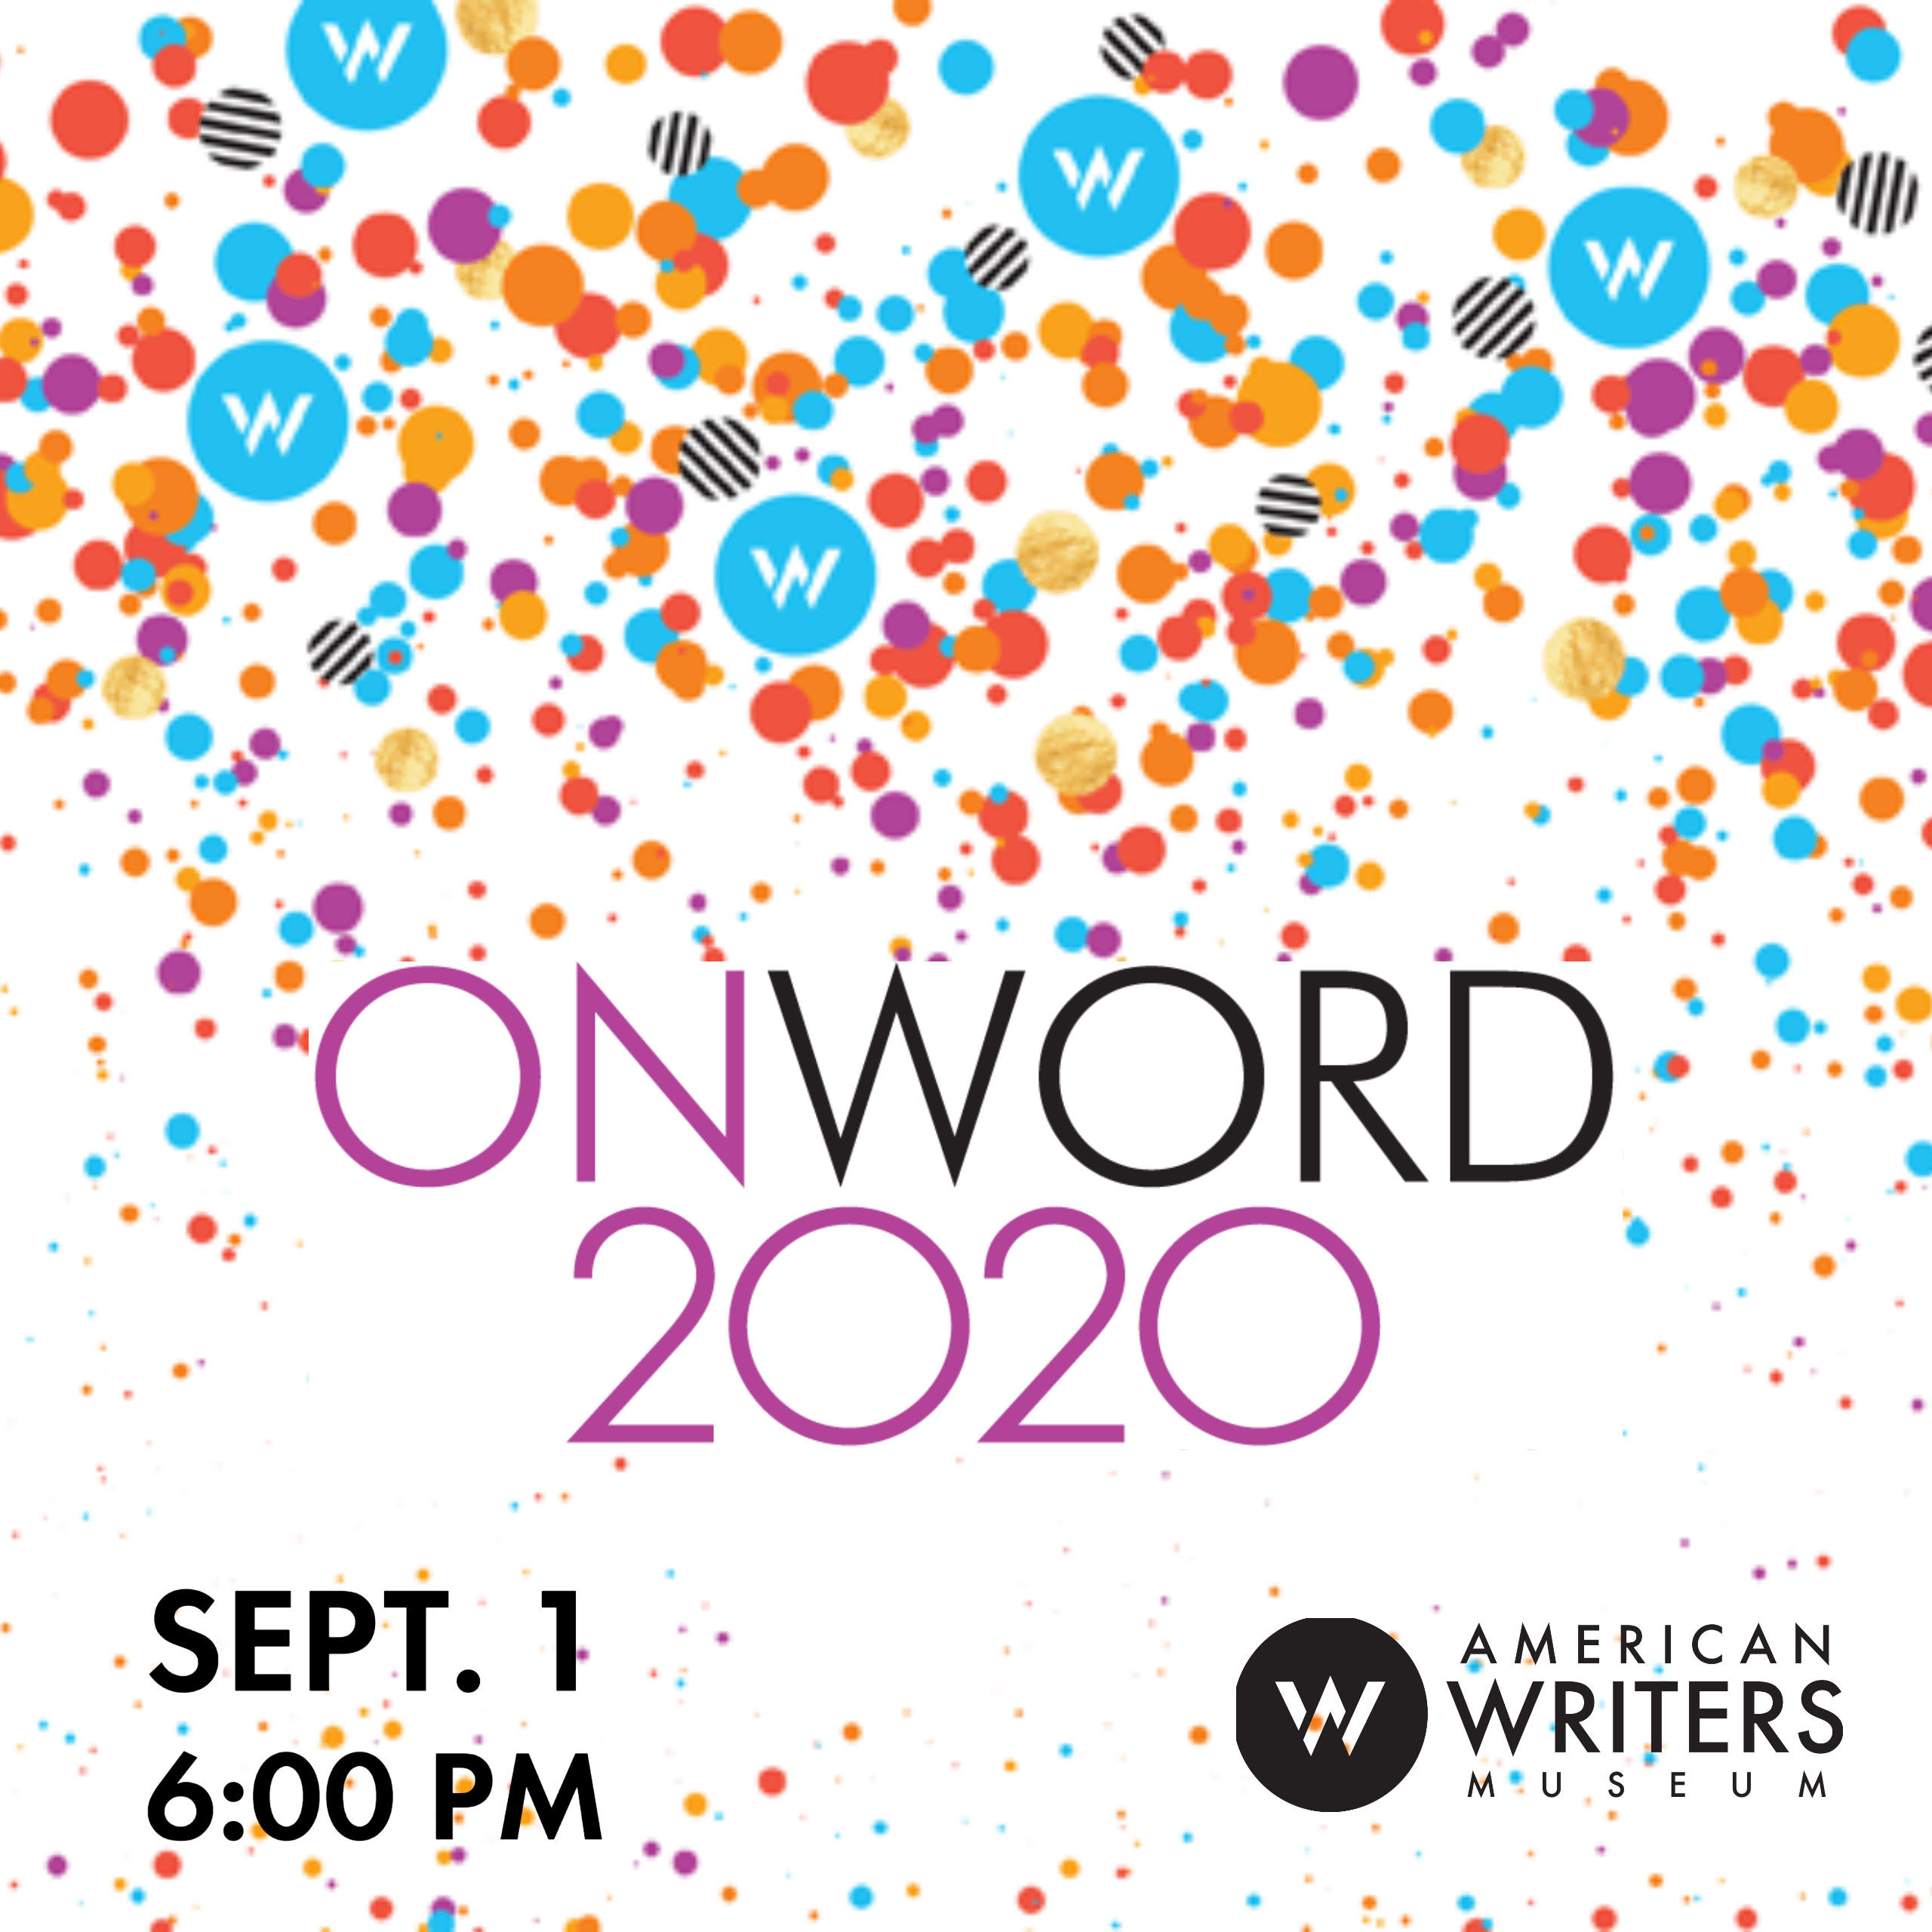 Hosted by NPR's Peter Sagal, OnWord 2020 combines love of the written word with performance, laughter & community to raise money for the AWM.